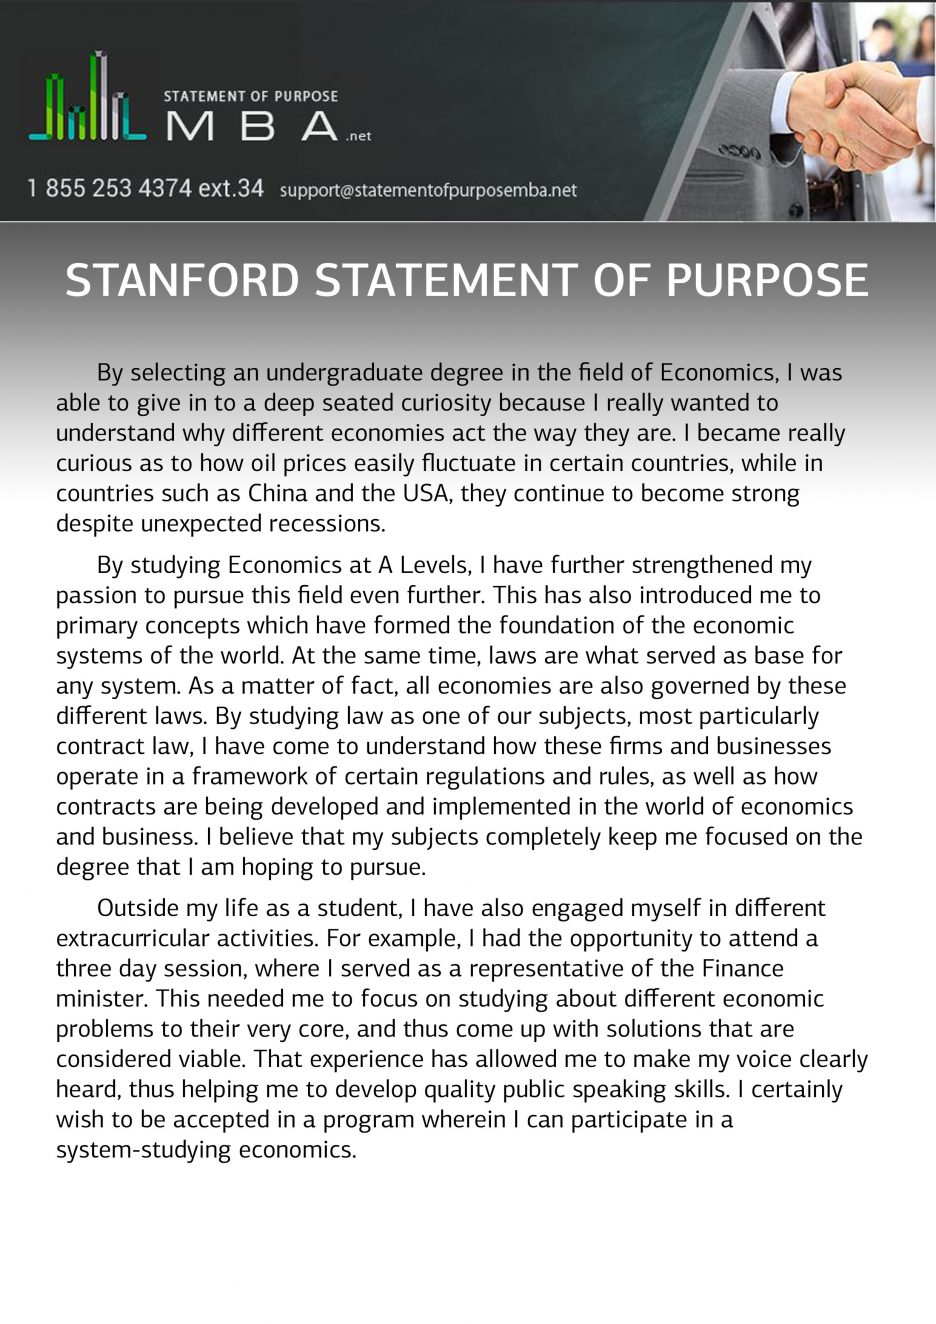 011 Stanford Essays Roommate Statement Purpose Sample Essay Accepted Examples That Worked Tips Example Prompt College Confidential Of Advice Reddit Facebook Stunning Full